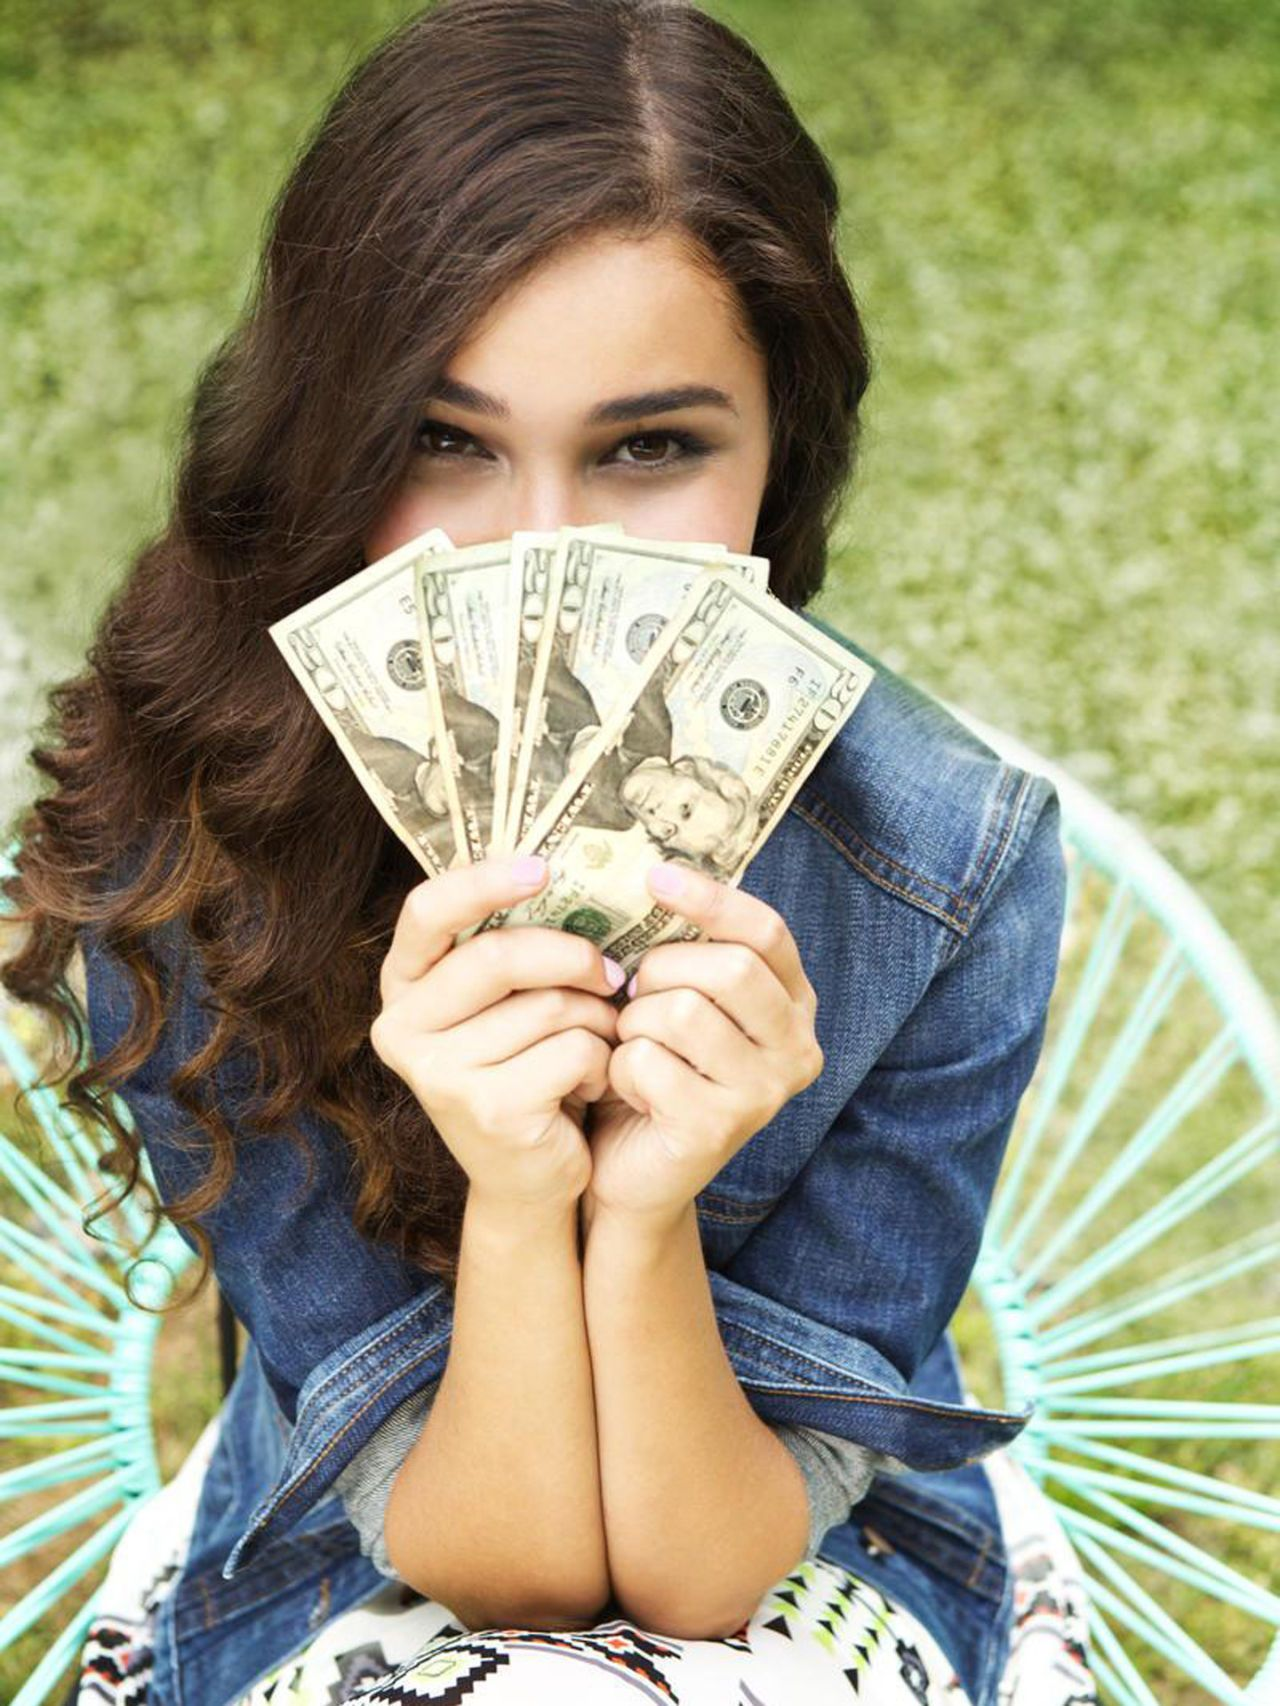 12 Ways For Teens To Save Money - How To Make More Money